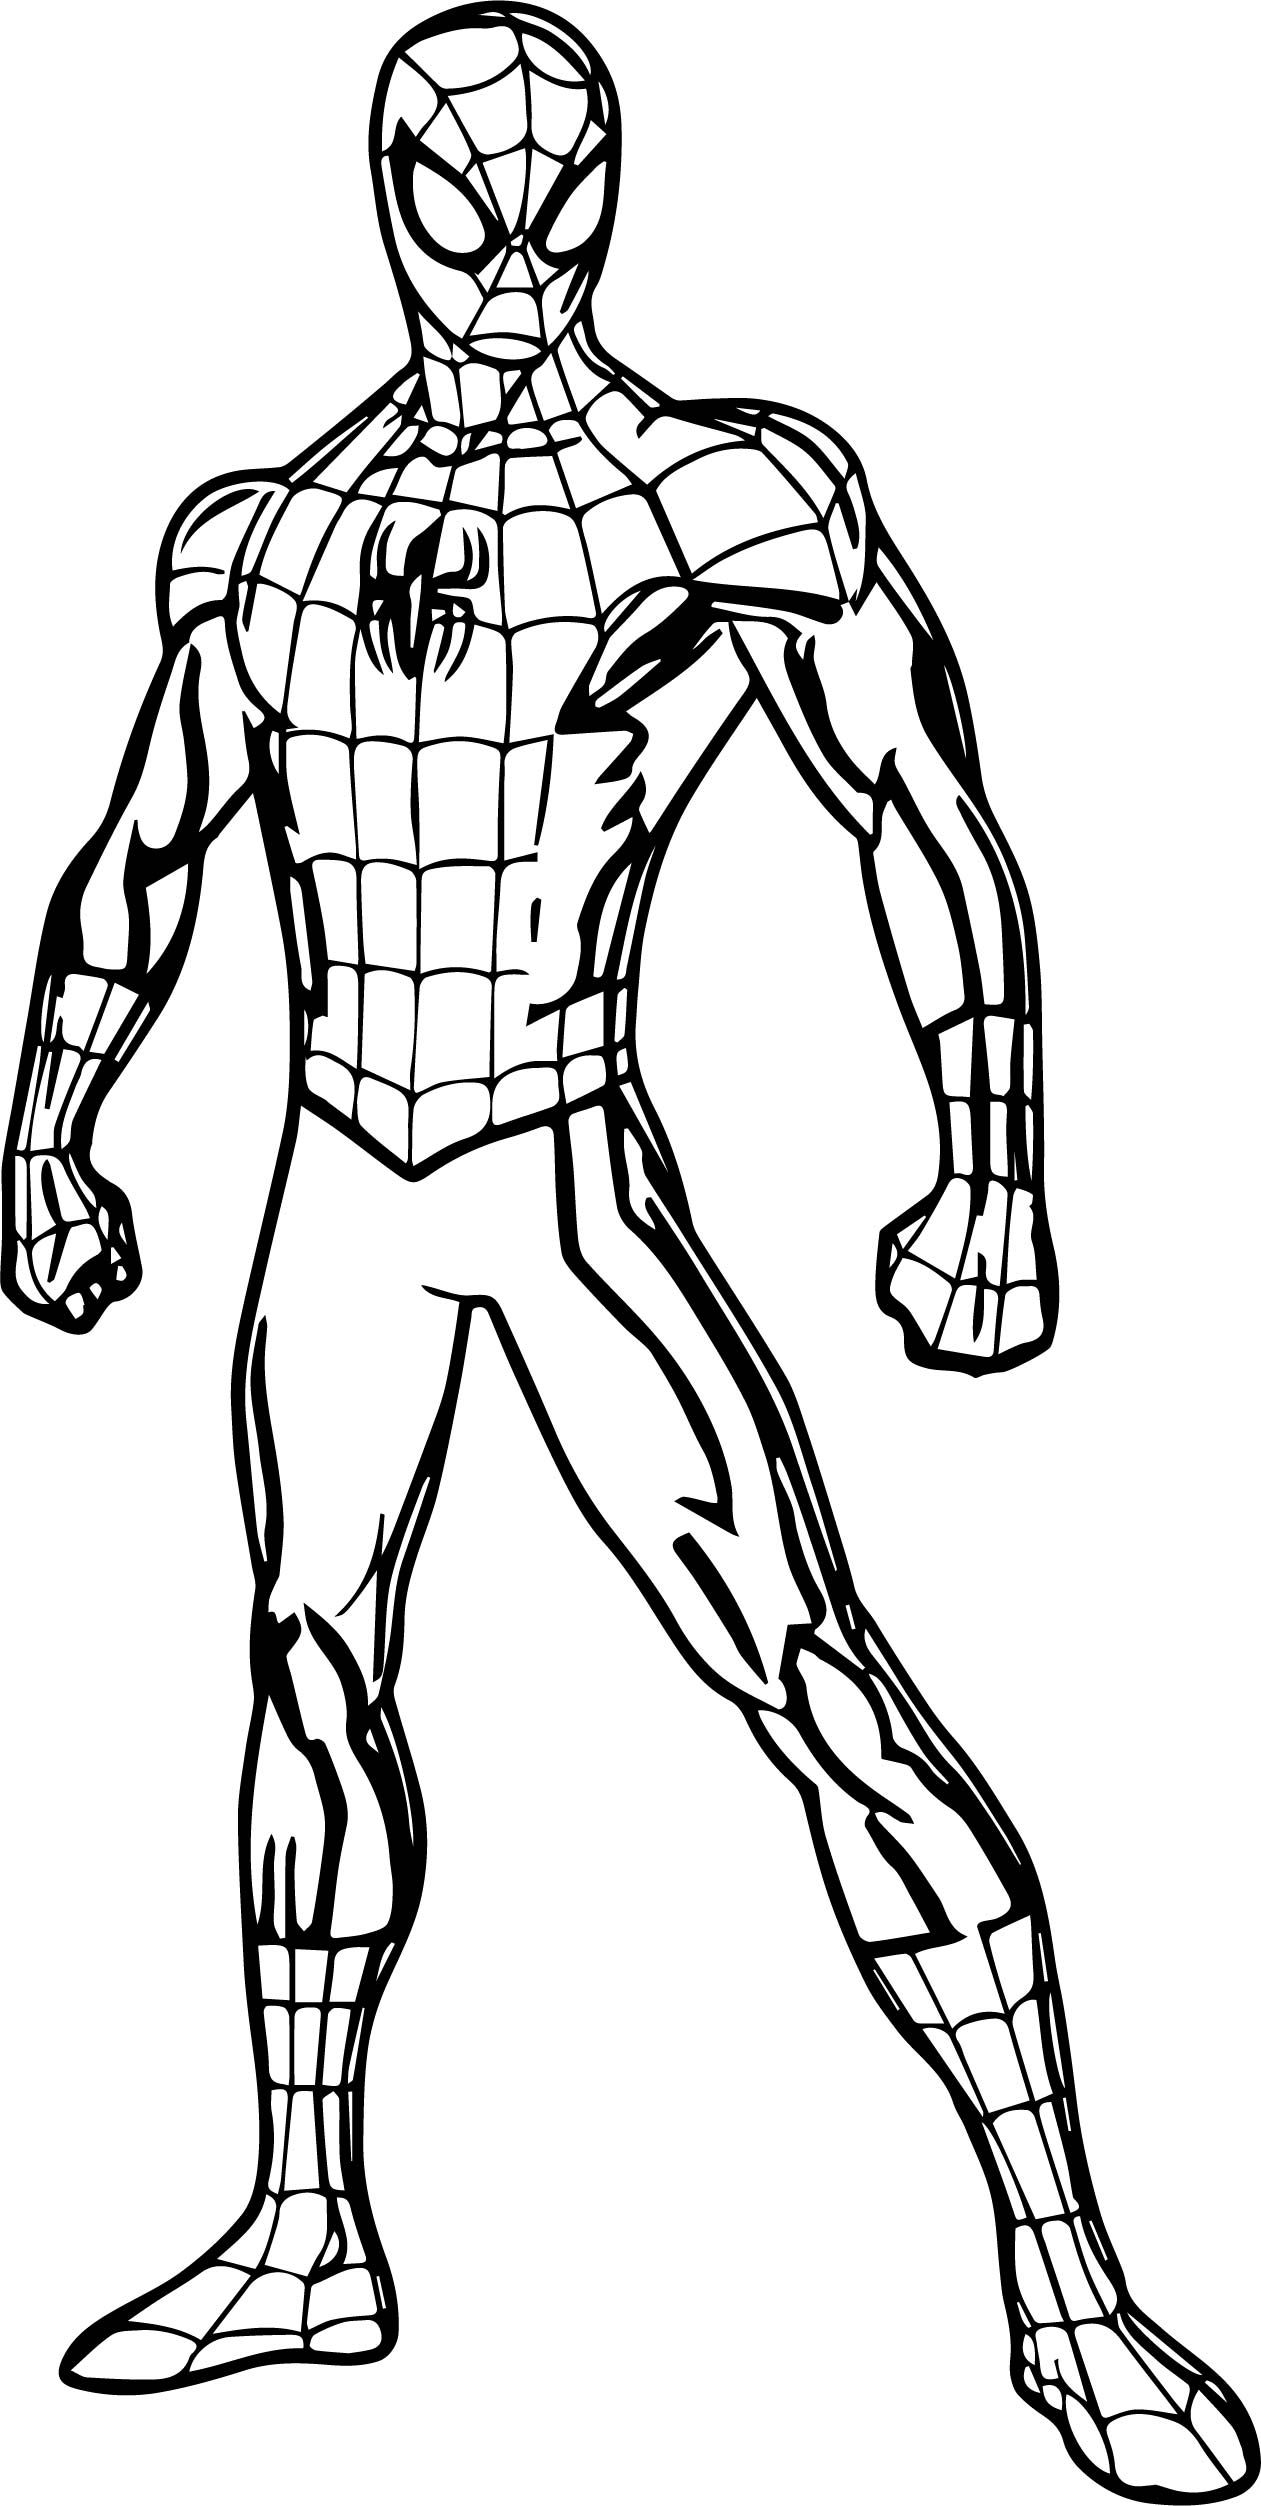 spiderman colouring pics spiderman coloring pages coloring pages to print pics colouring spiderman